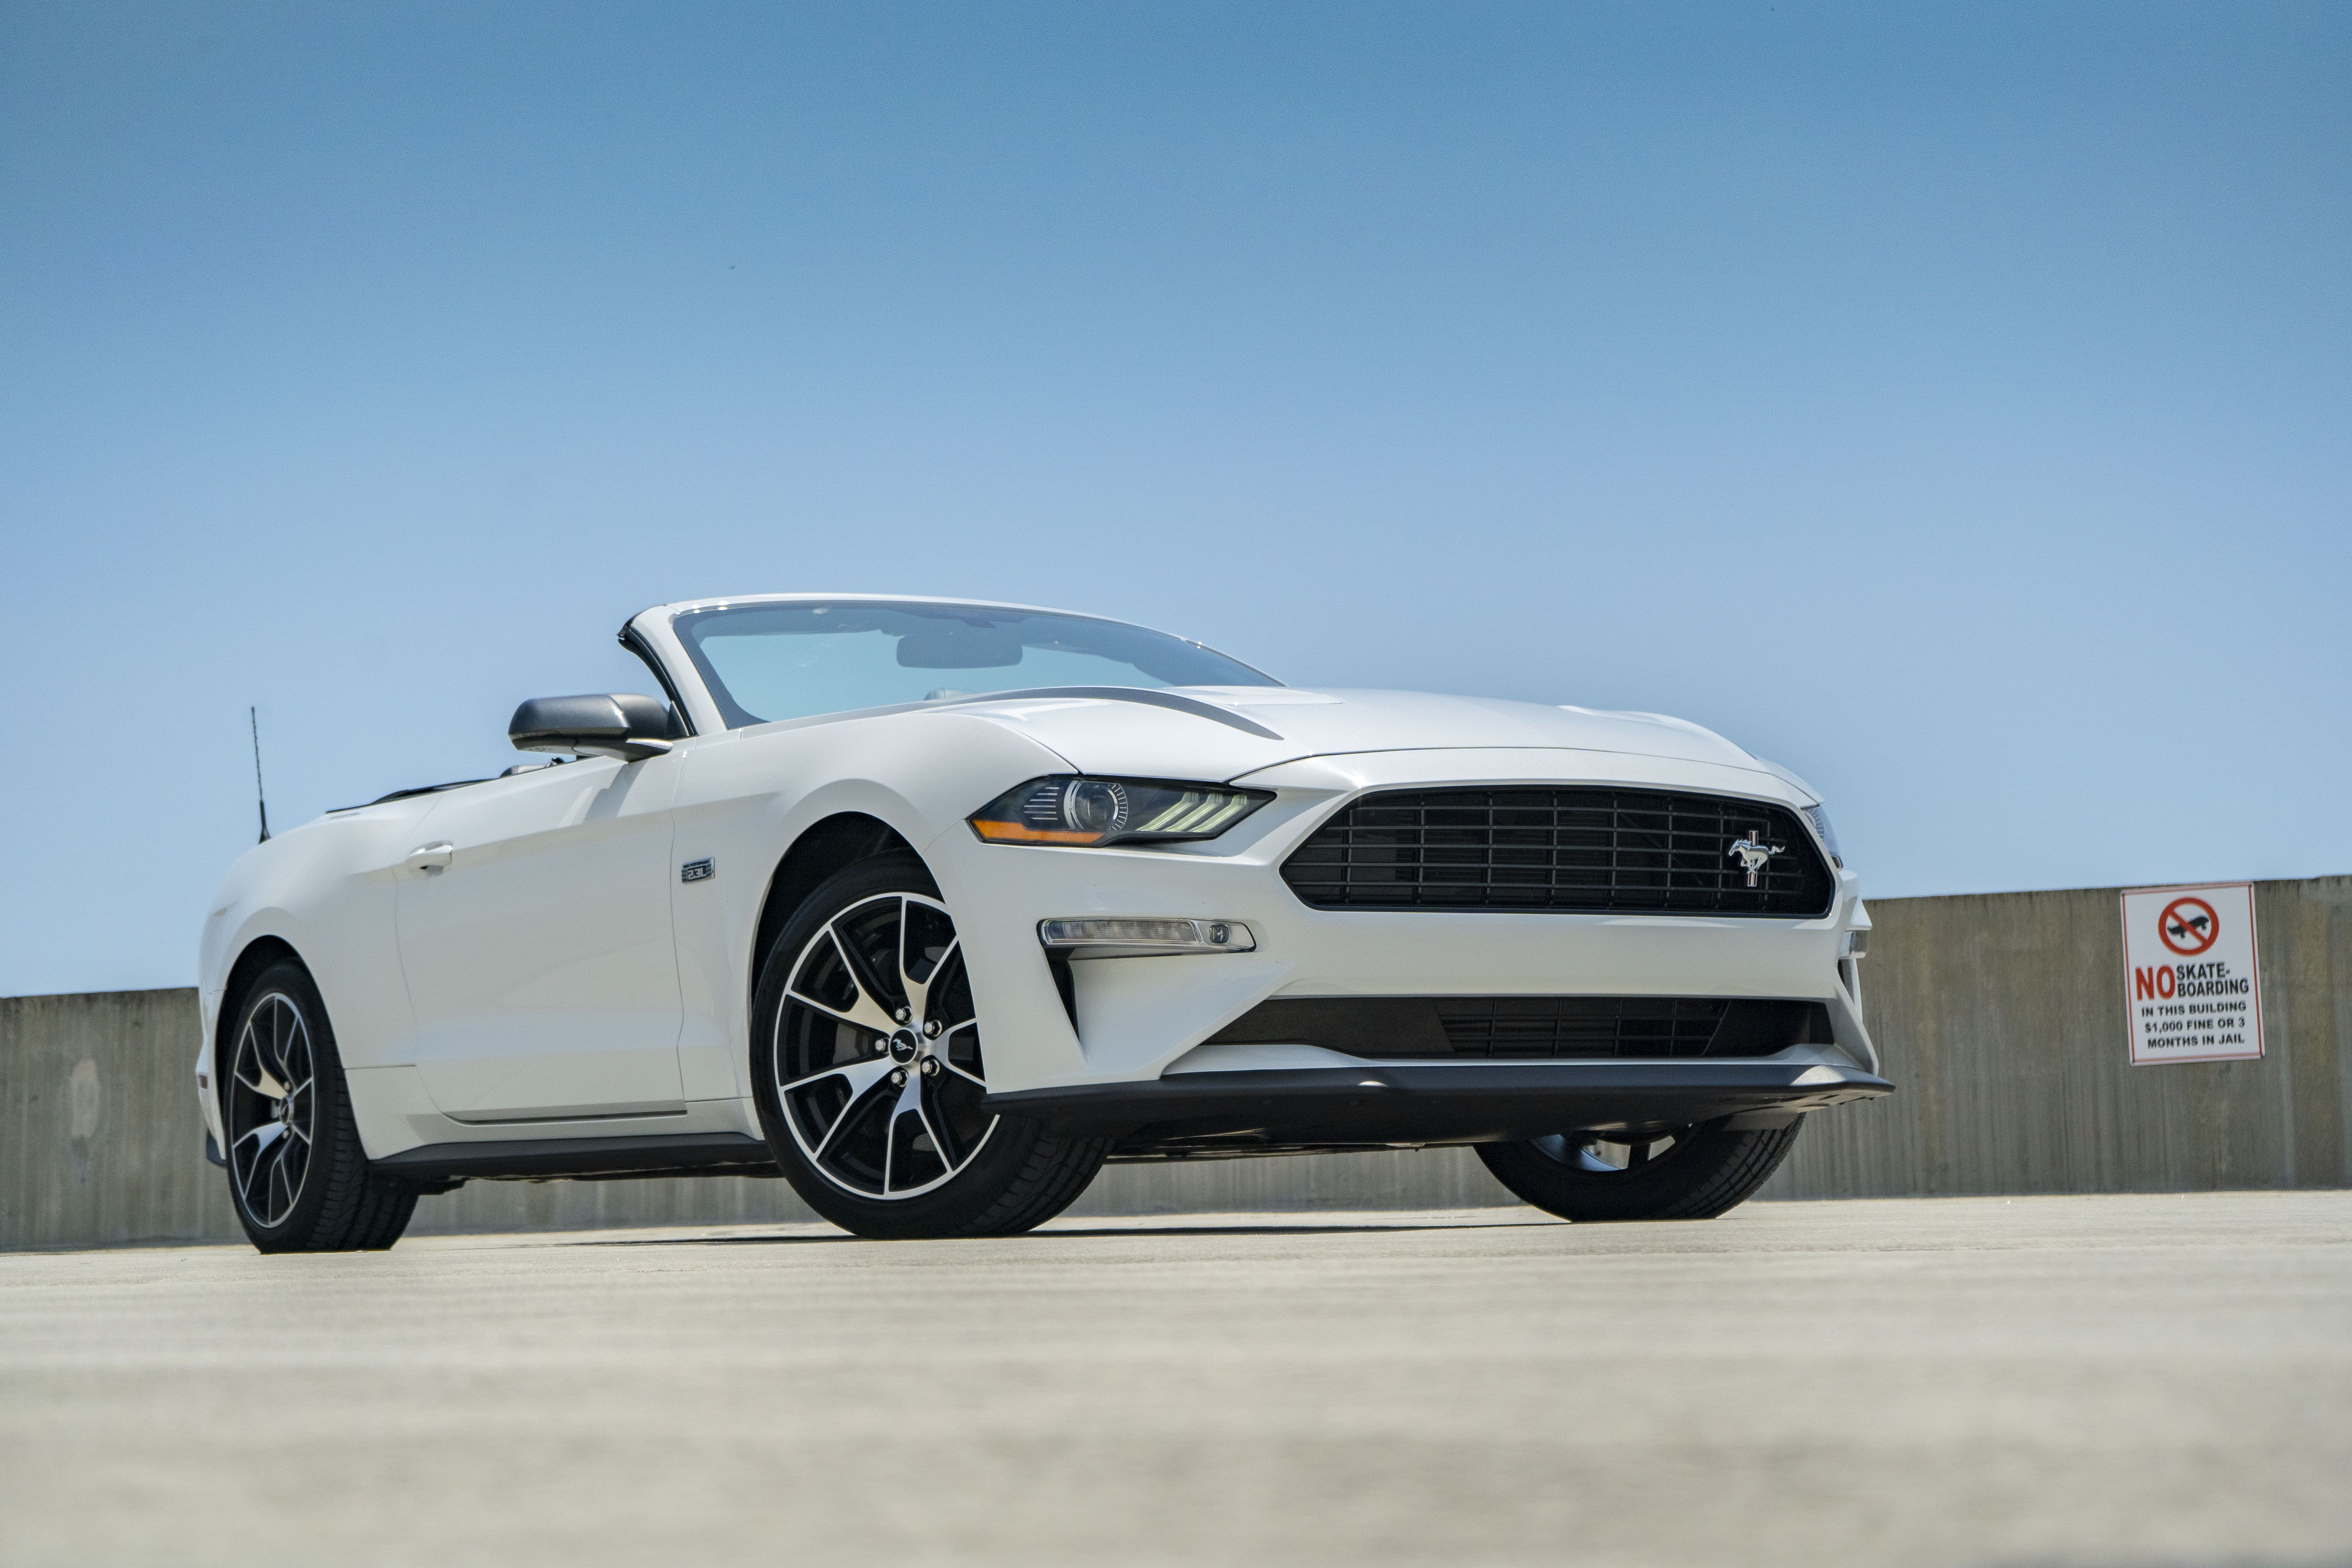 2020 Ford Mustang Four Cylinder Driven Top Speed Ford Mustang Camaro Convertible Mustang